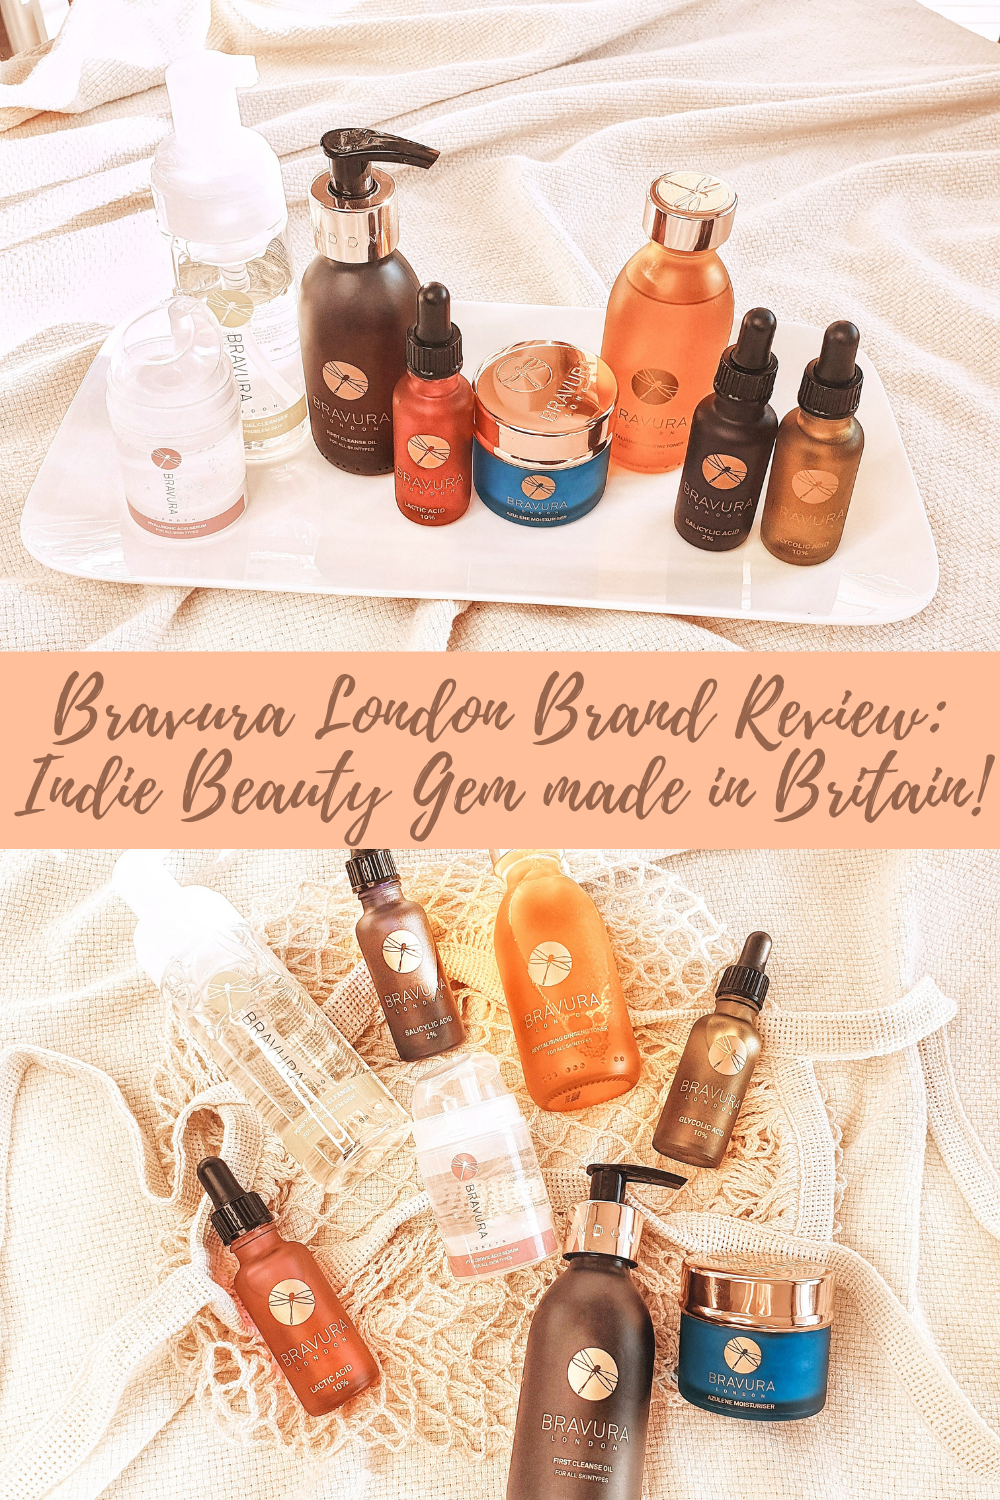 Bravura London Brand Review: Indie Beauty Gem Made in Britain!